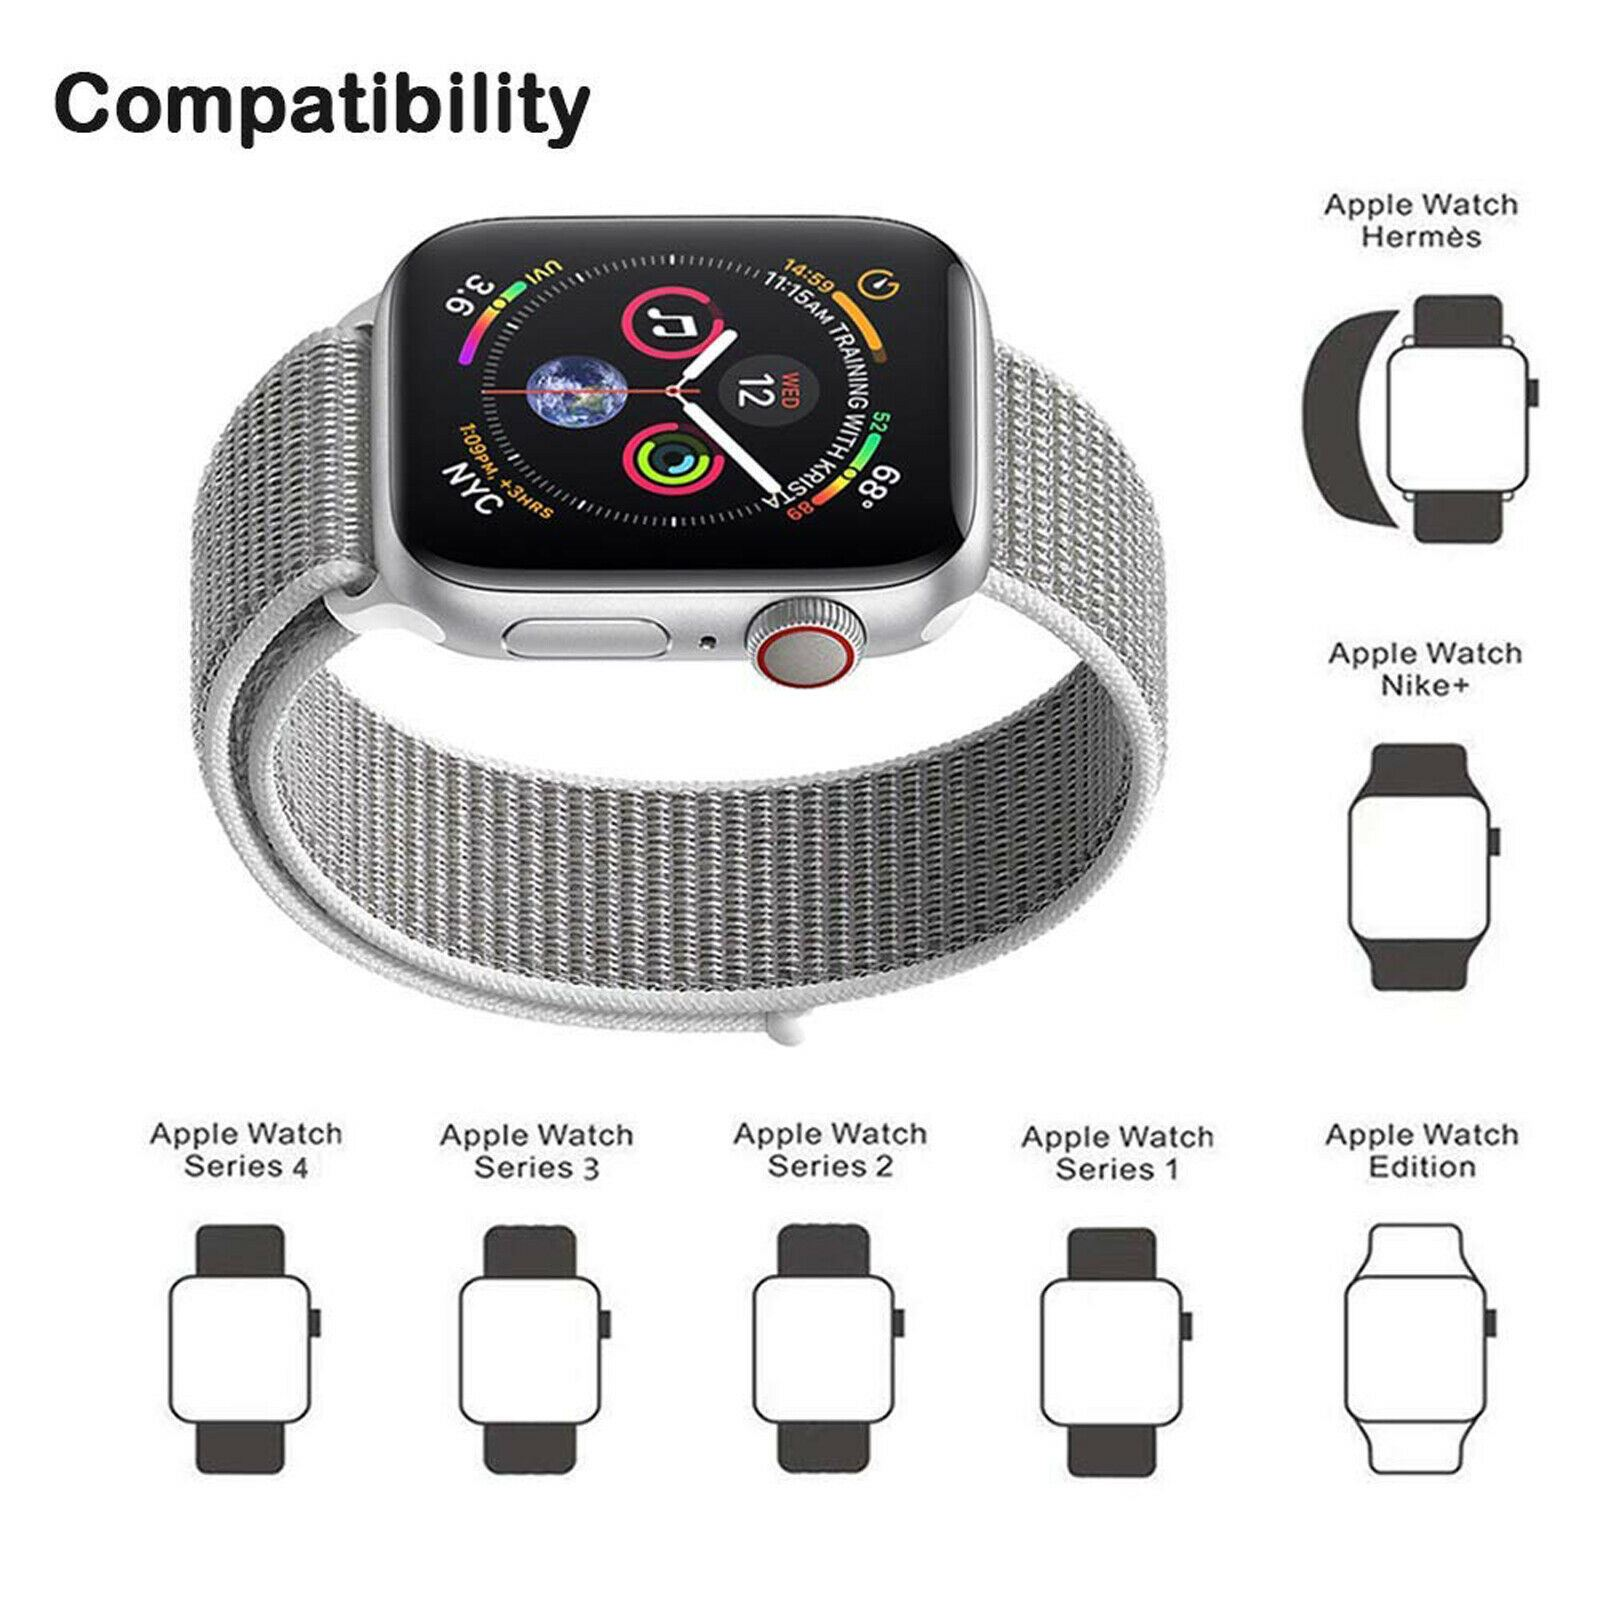 Band-Strap-For-Apple-Watch-Adjustable-Waterproof-Braided-Nylon-Material thumbnail 29